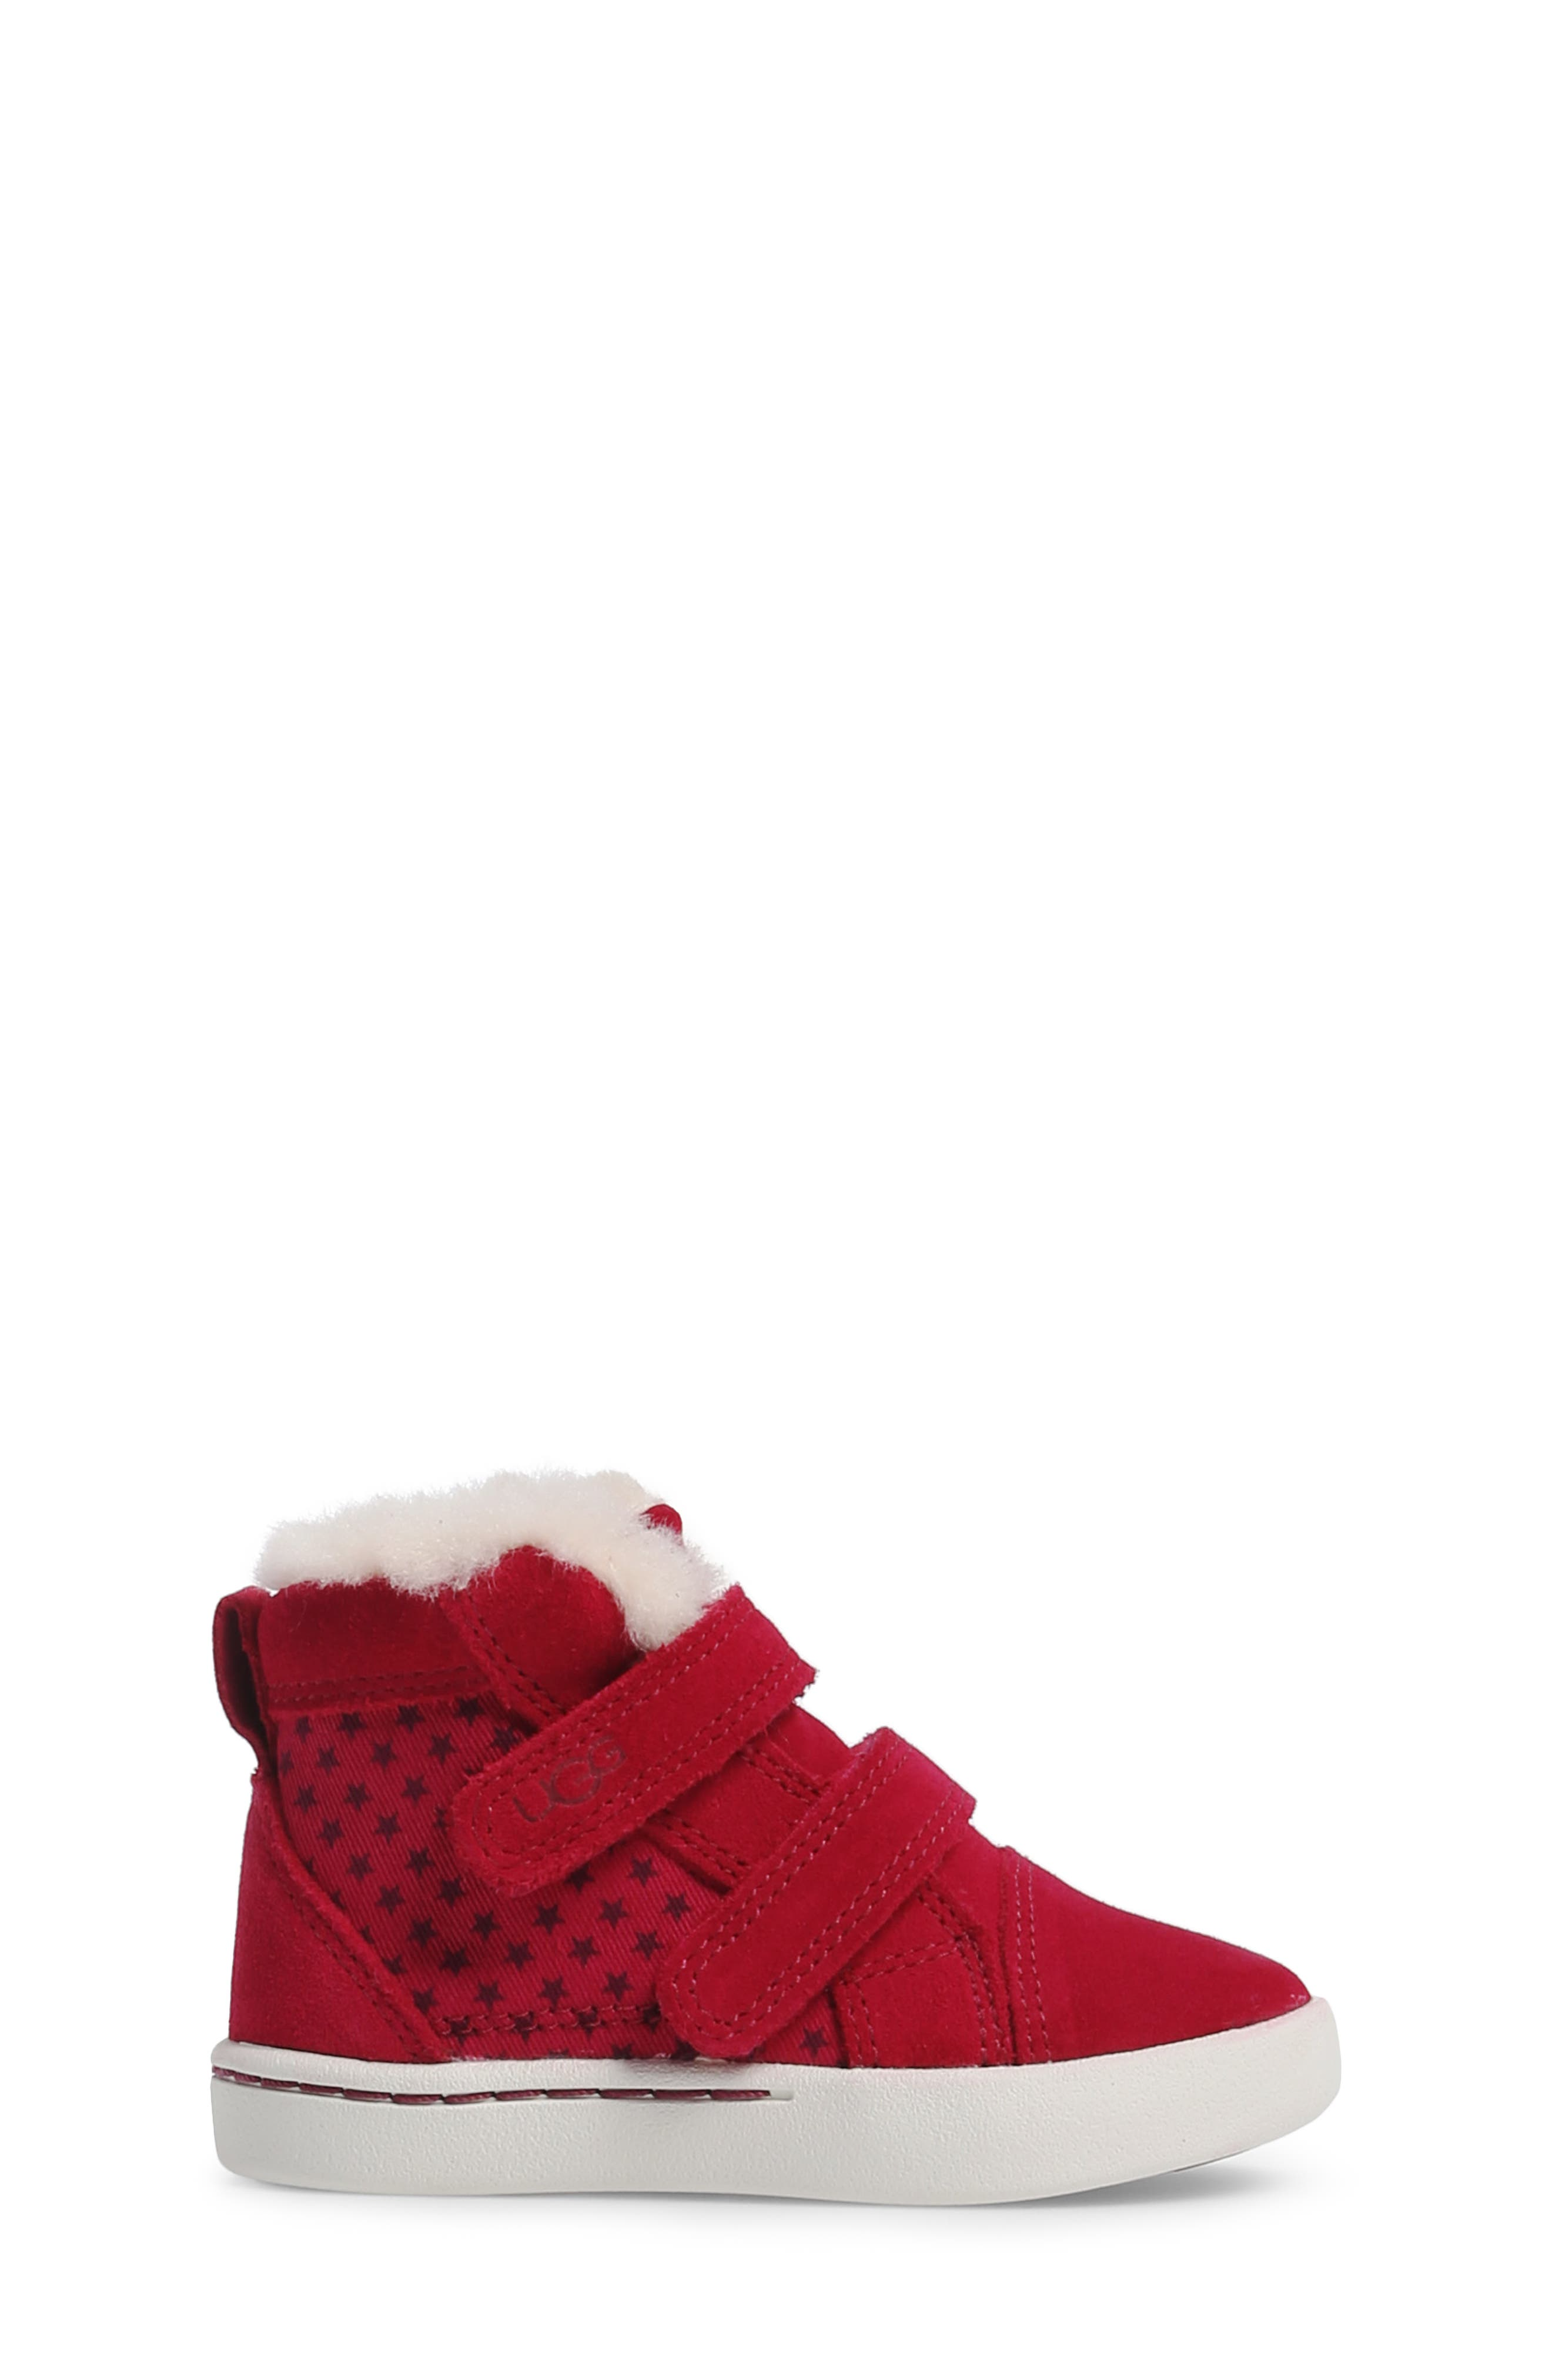 Rennon Stars High Top Sneaker,                             Alternate thumbnail 3, color,                             Brambleberry